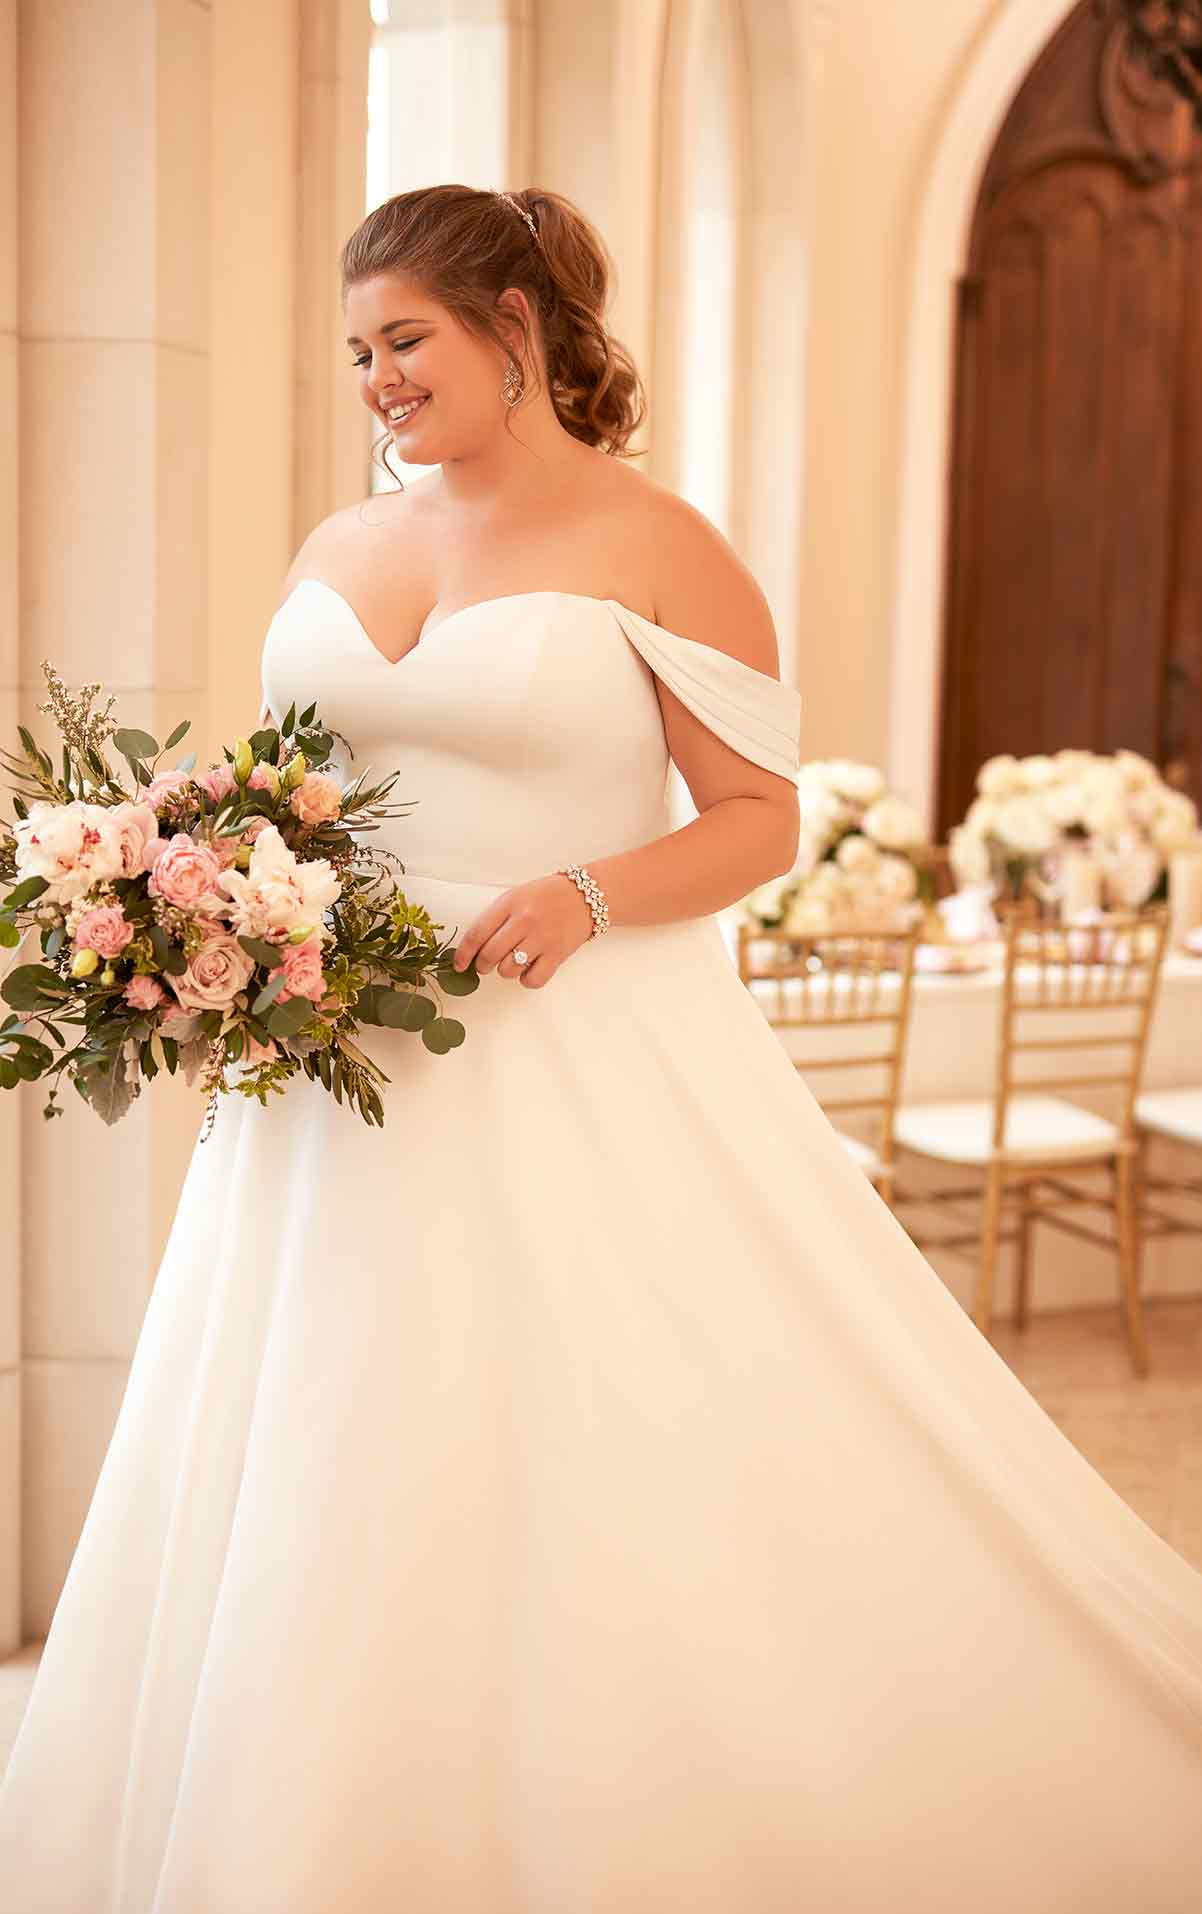 plus-sized bride in satin gown with off the shoulders straps